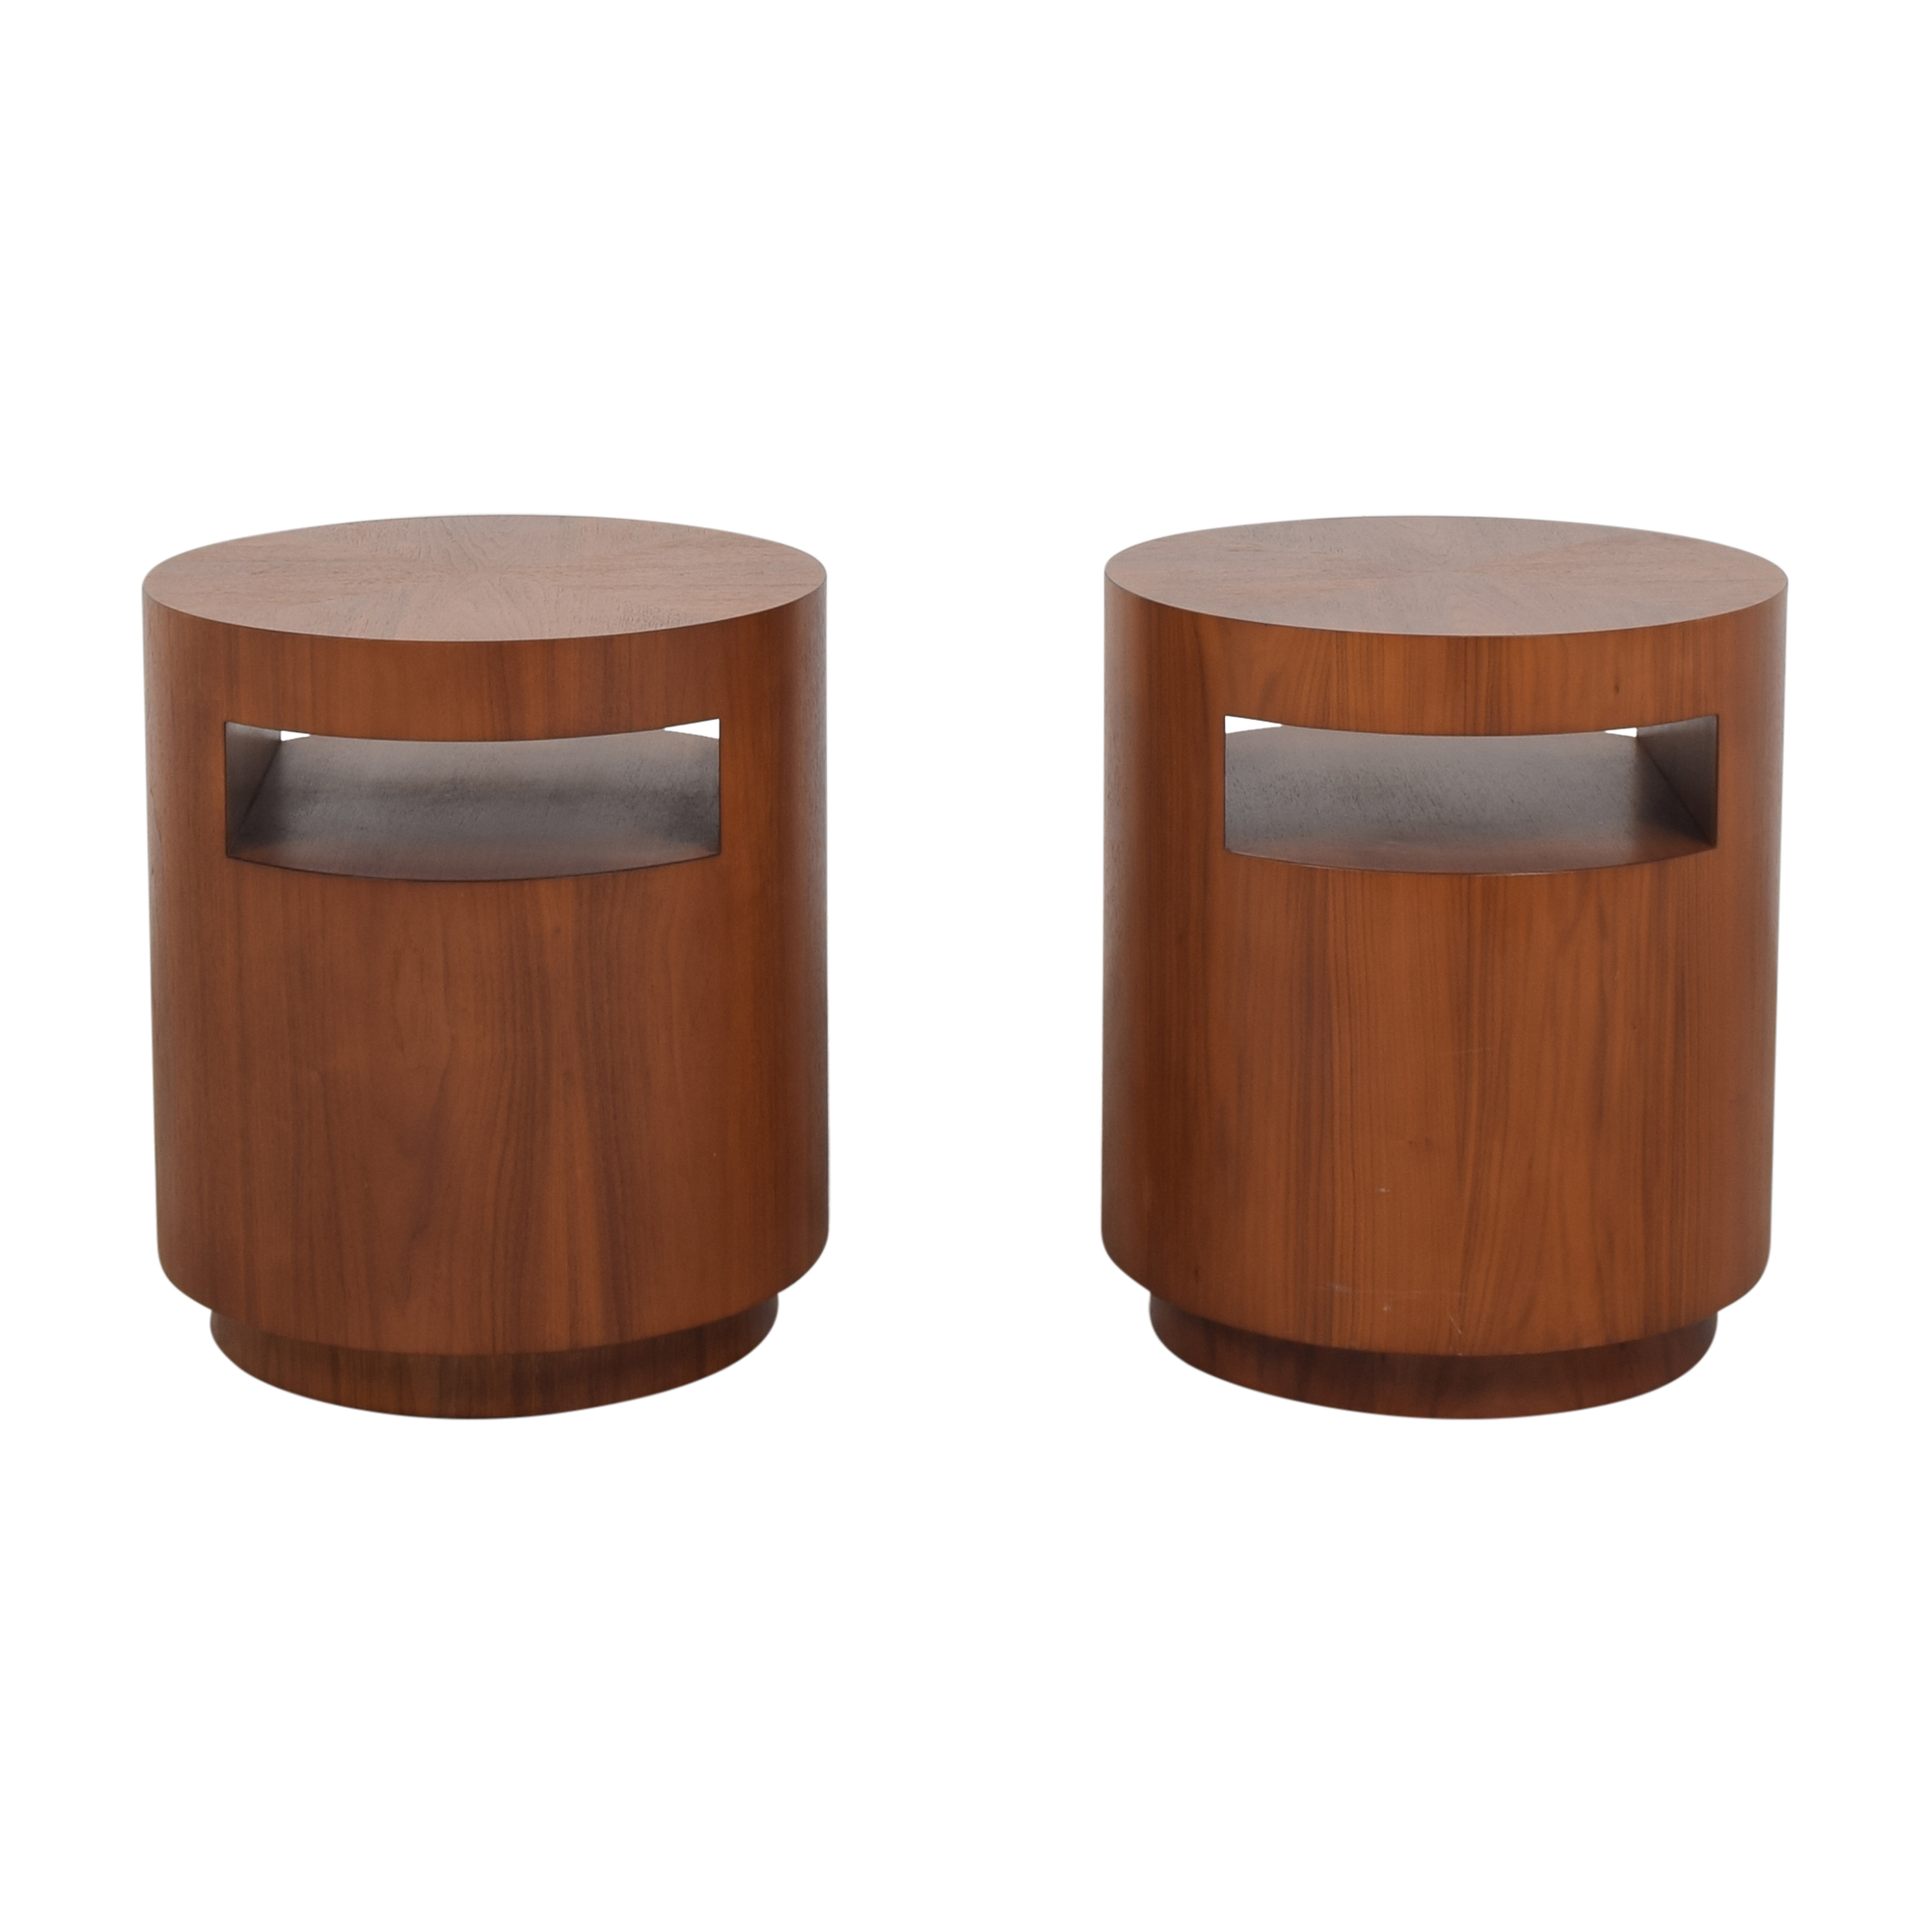 Crate & Barrel Crate & Barrel Tambe End Tables discount